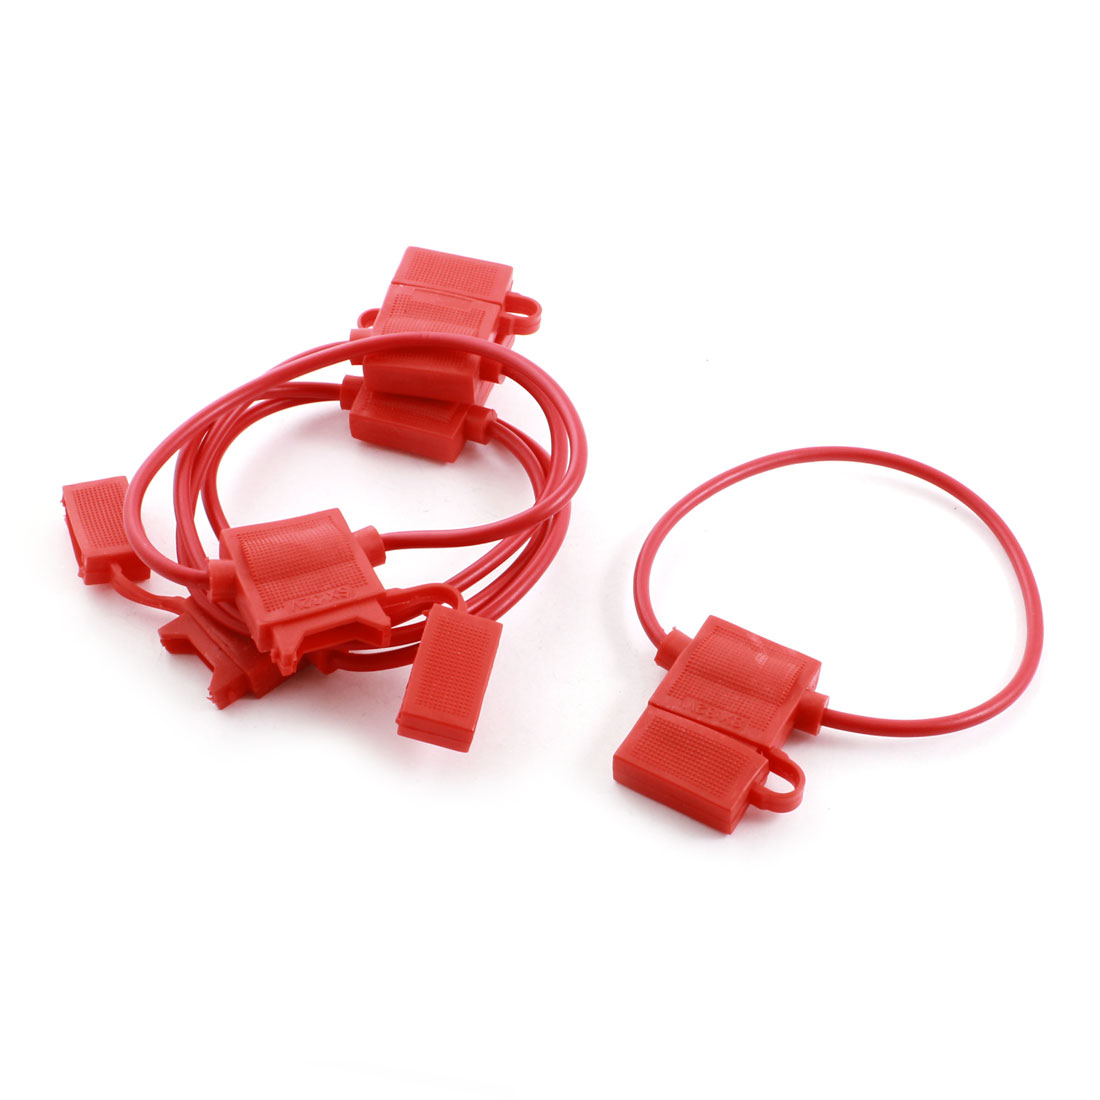 5Pcs Red Plastic Shell ATC Blade Inline Wired Fuse Holder Case Box for Auto Car